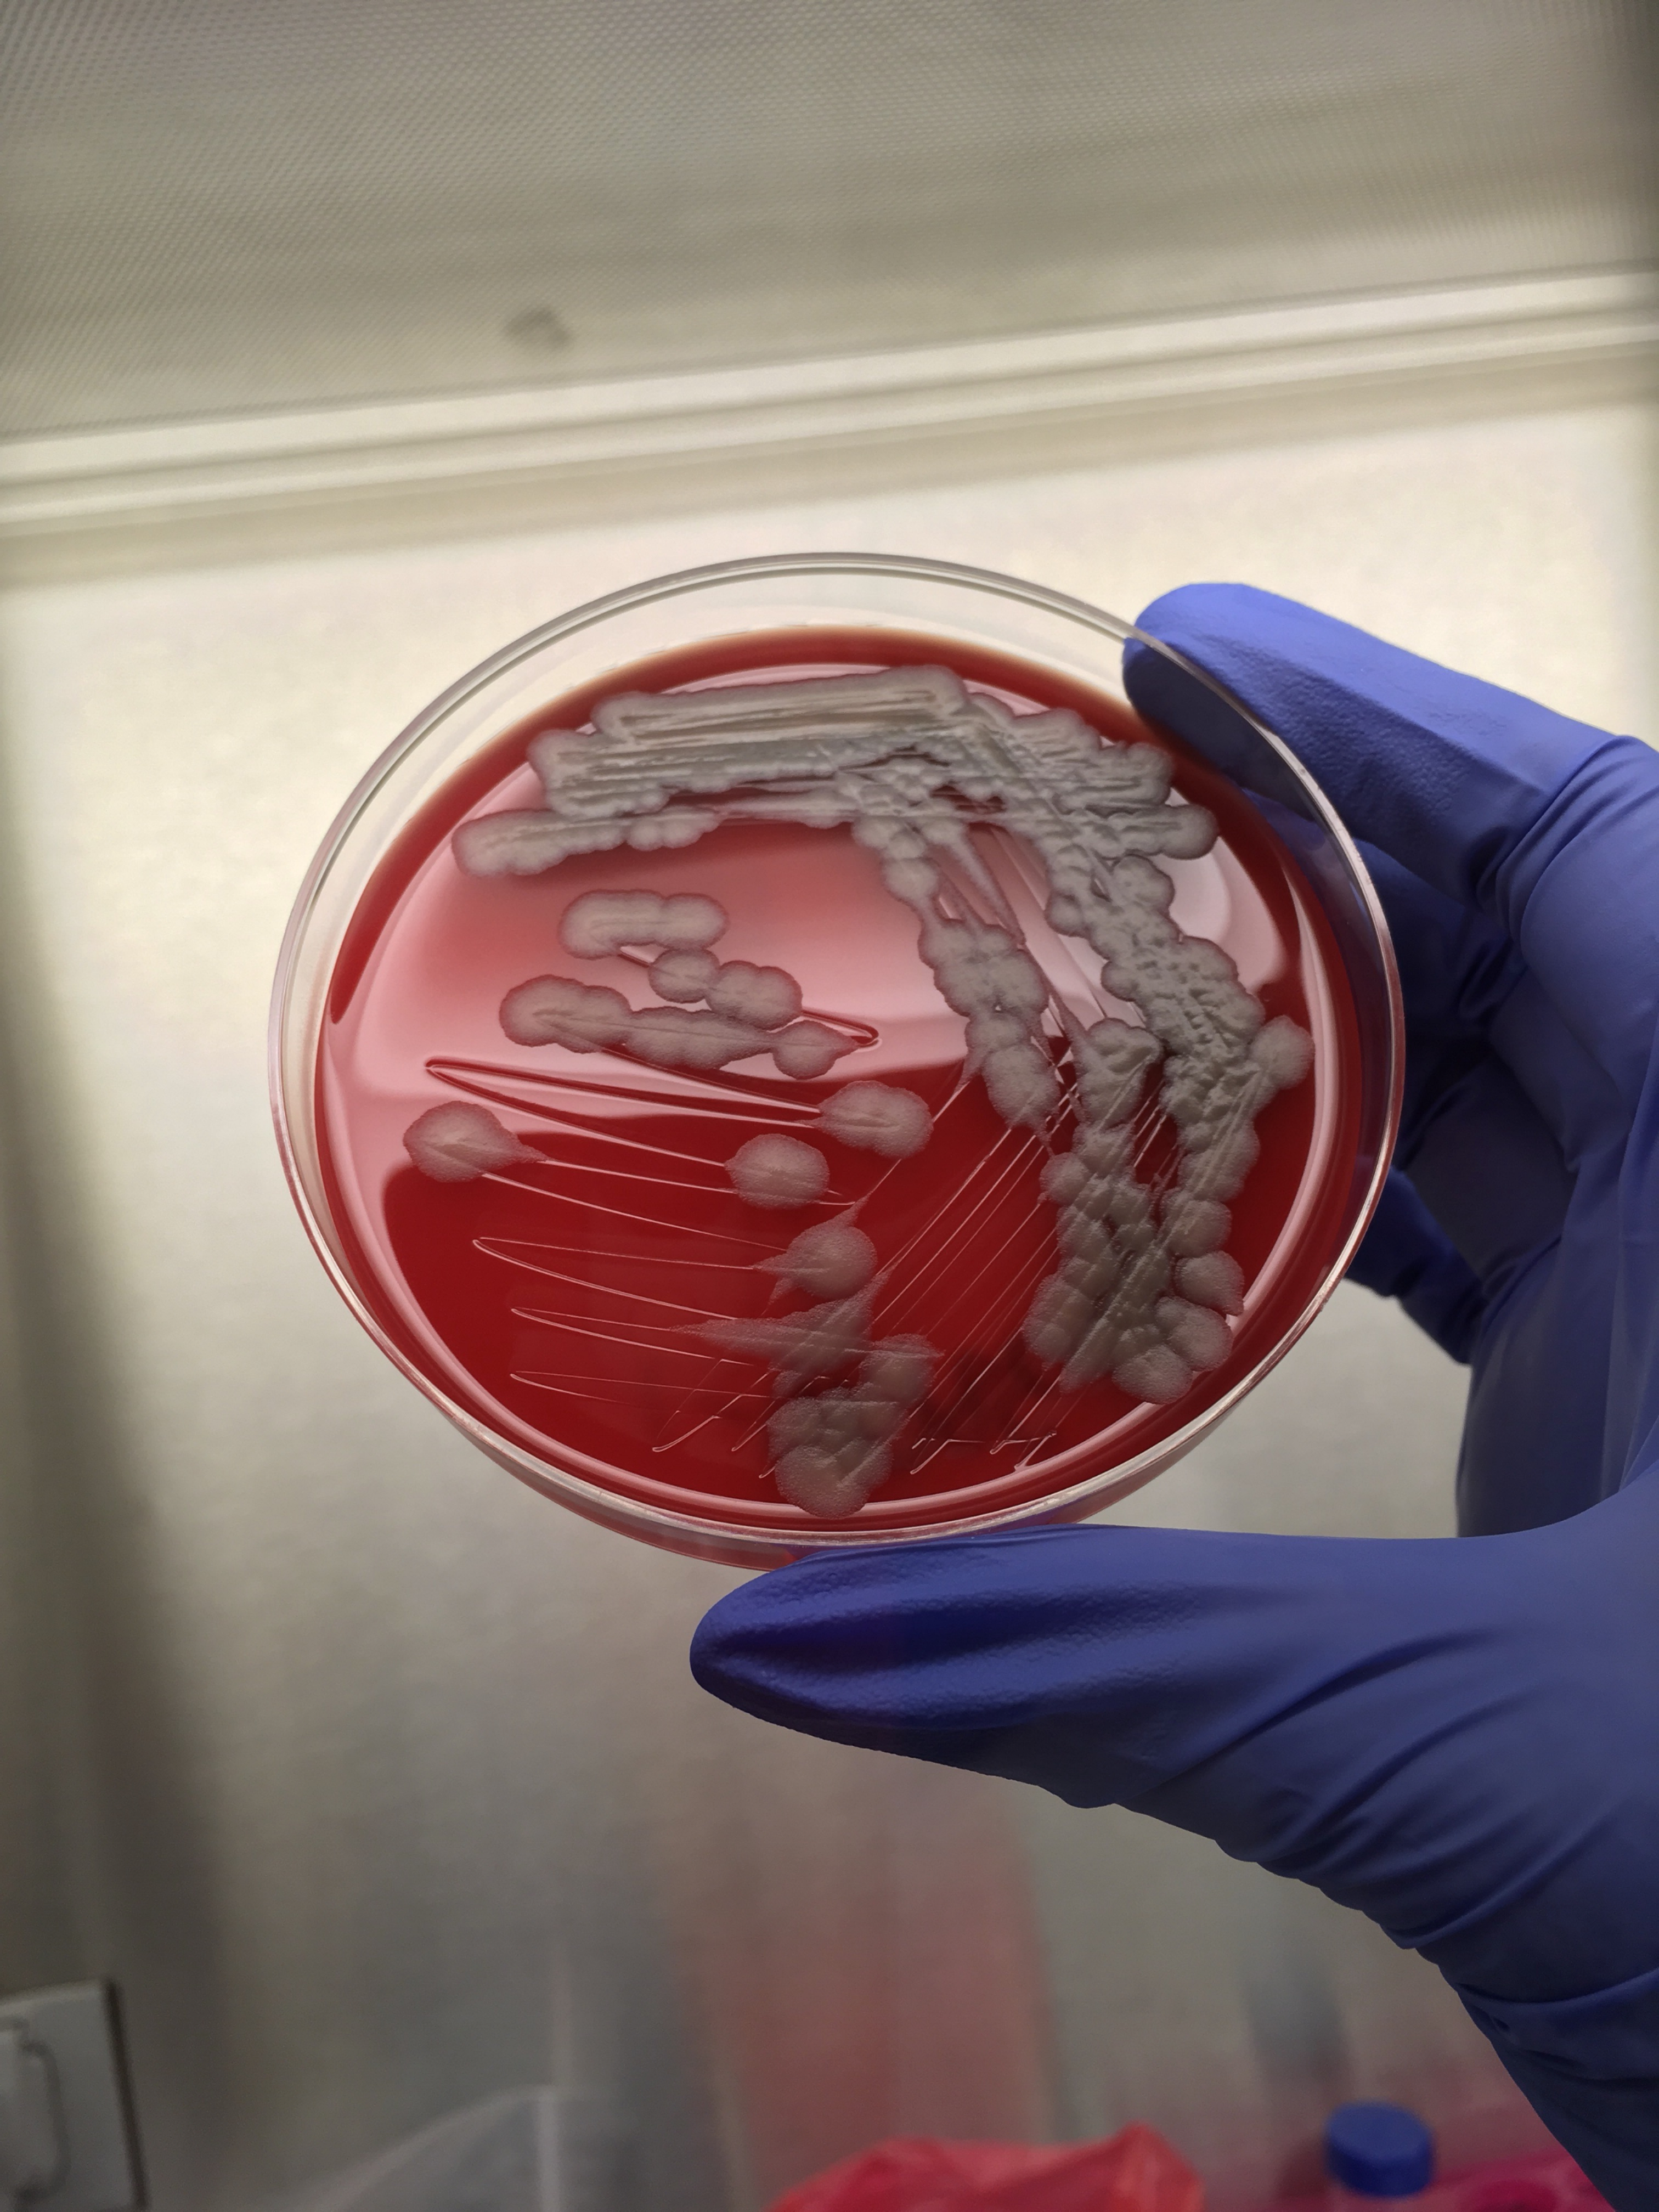 The Unanswered Questions About Anthrax